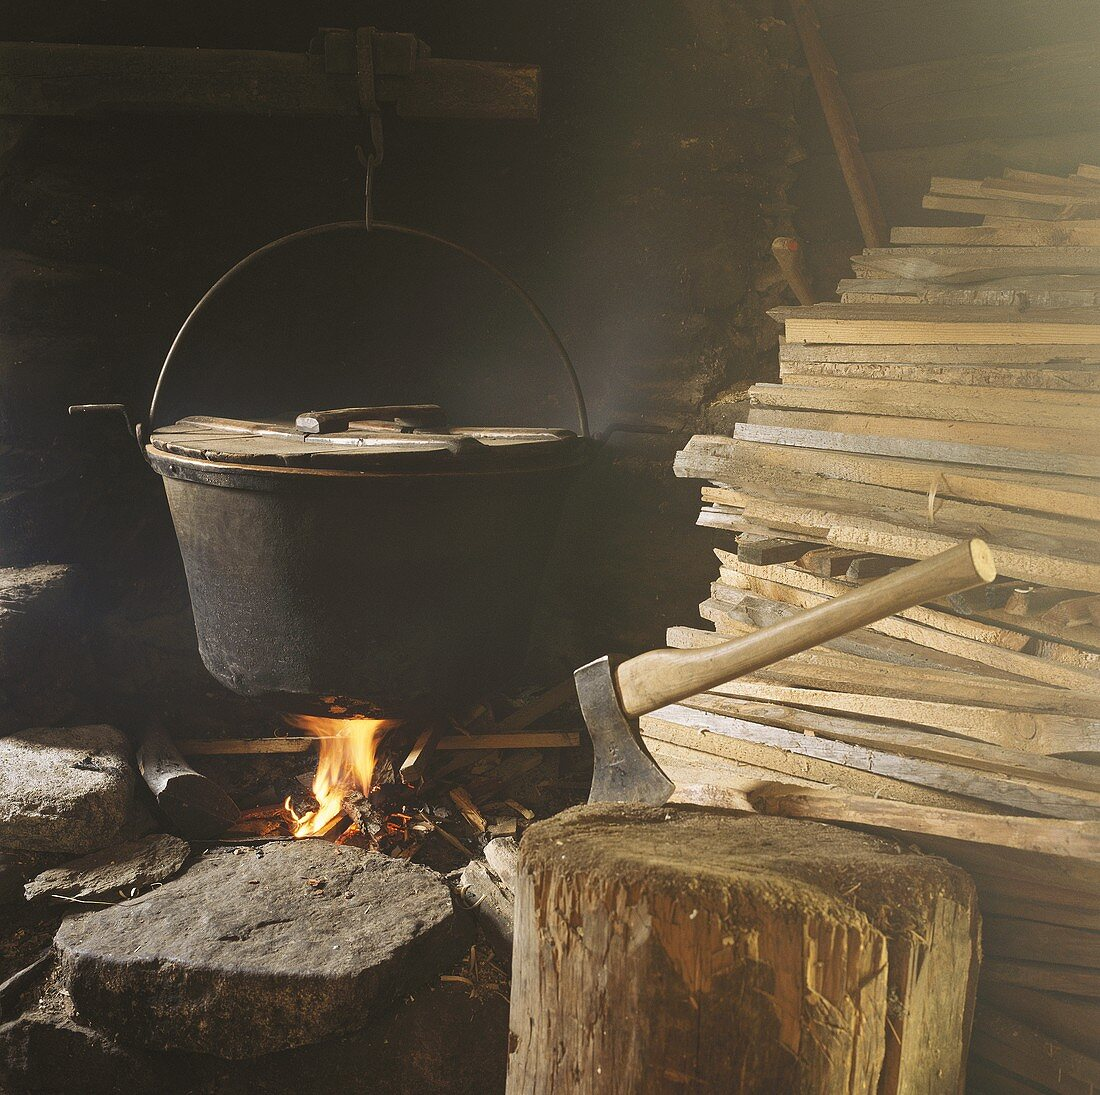 Cooking pot on open fire, axe and wood in old shack